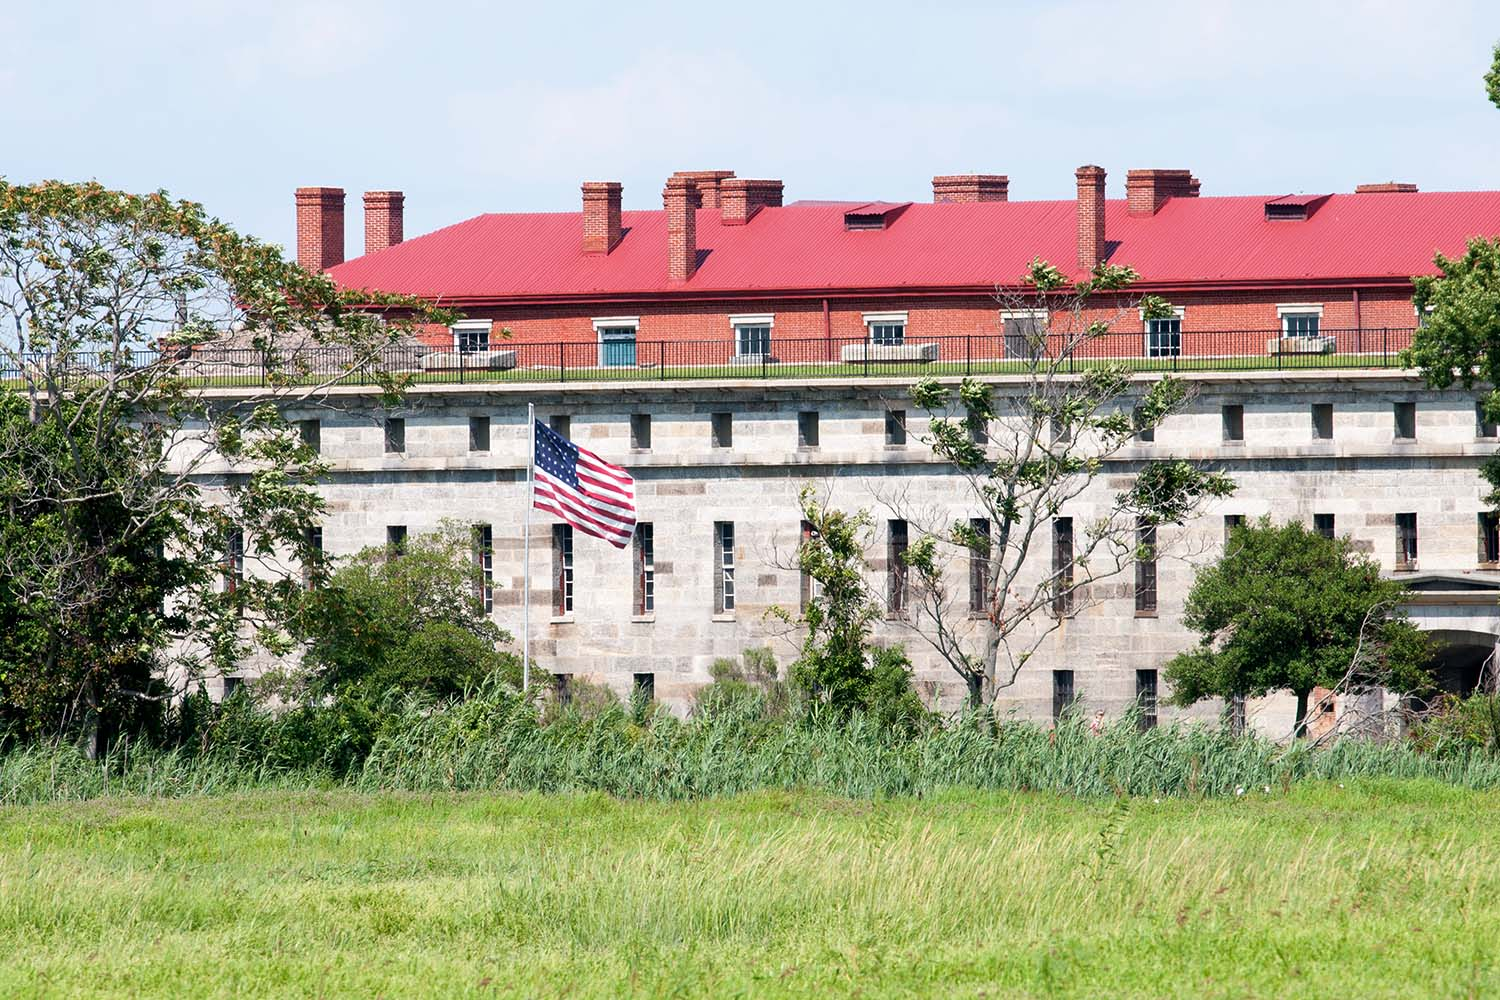 Fort Delaware State Park, Historic Union Civil War Fortress that housed Confederate Prisoners